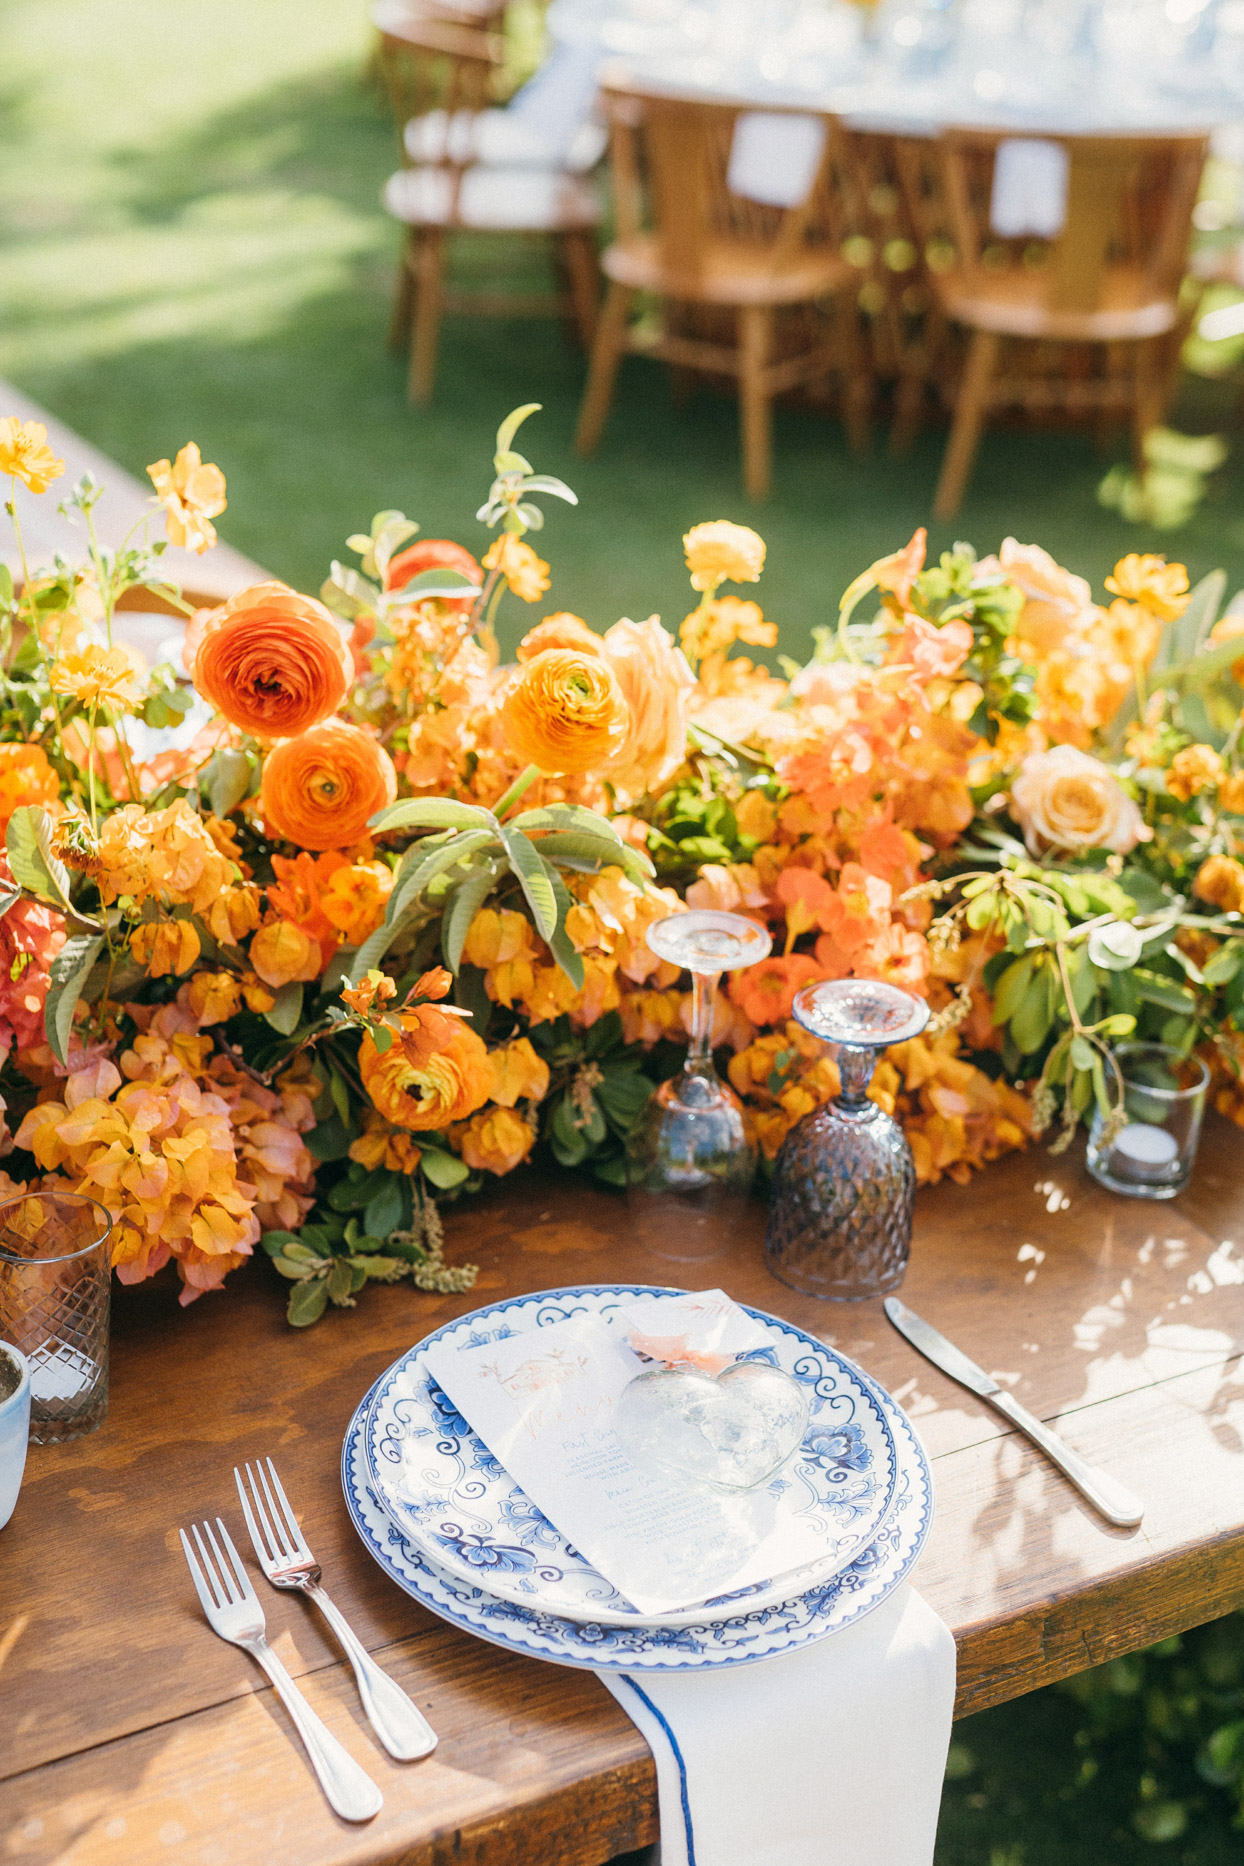 elegant wedding place setting with ornate blue plates and orange florals